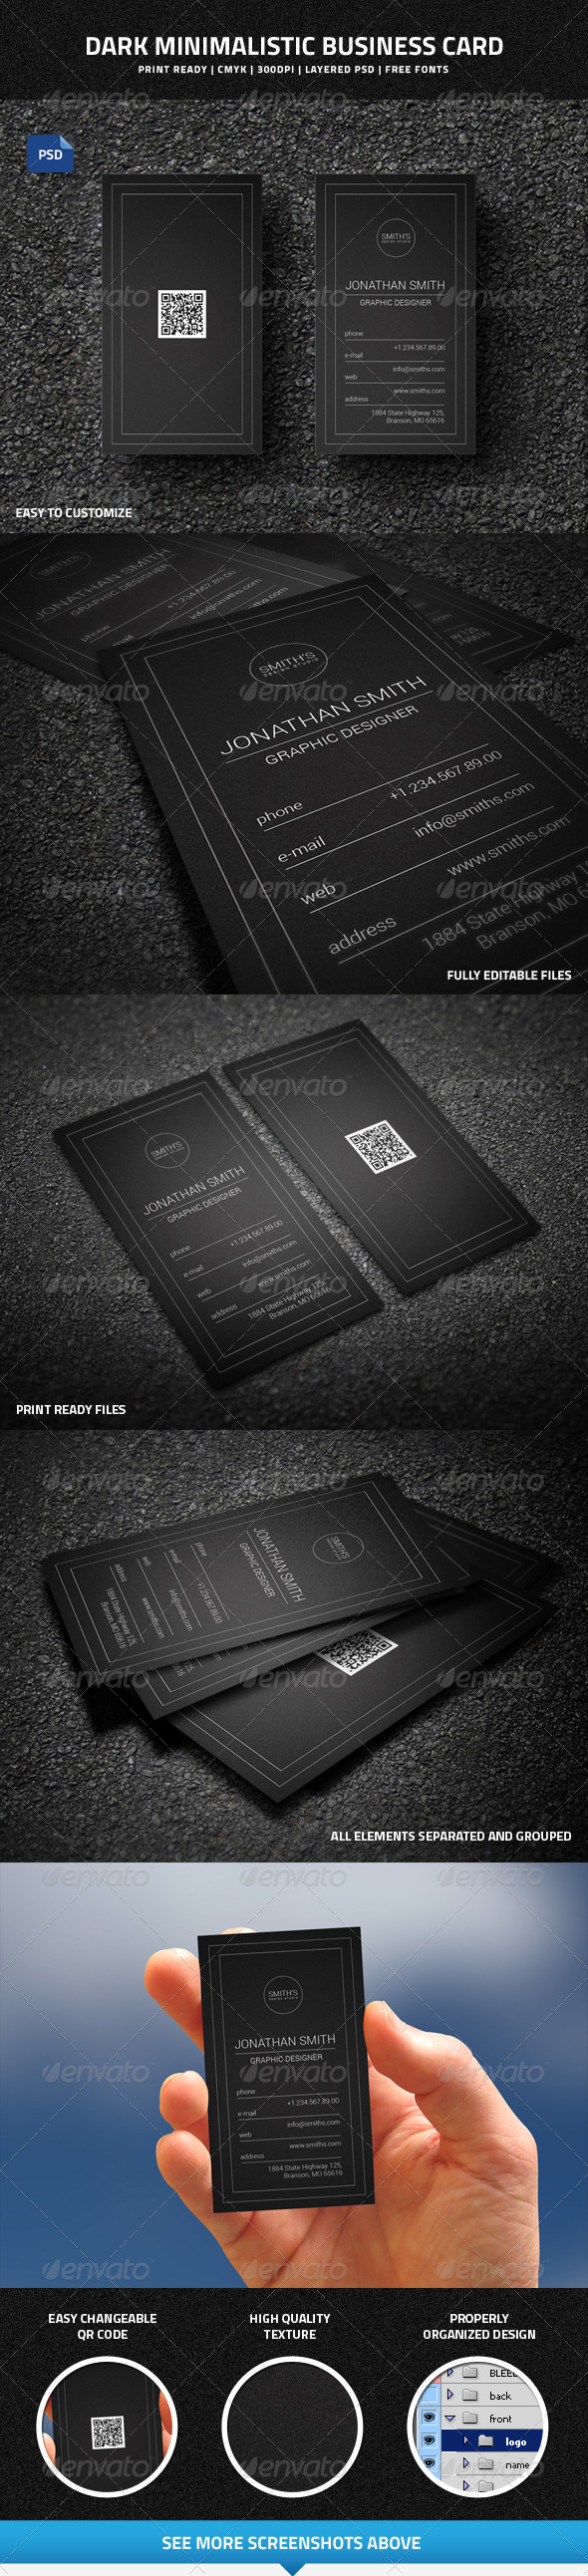 GraphicRiver Dark Minimalistic Business Card with QR code 8311563